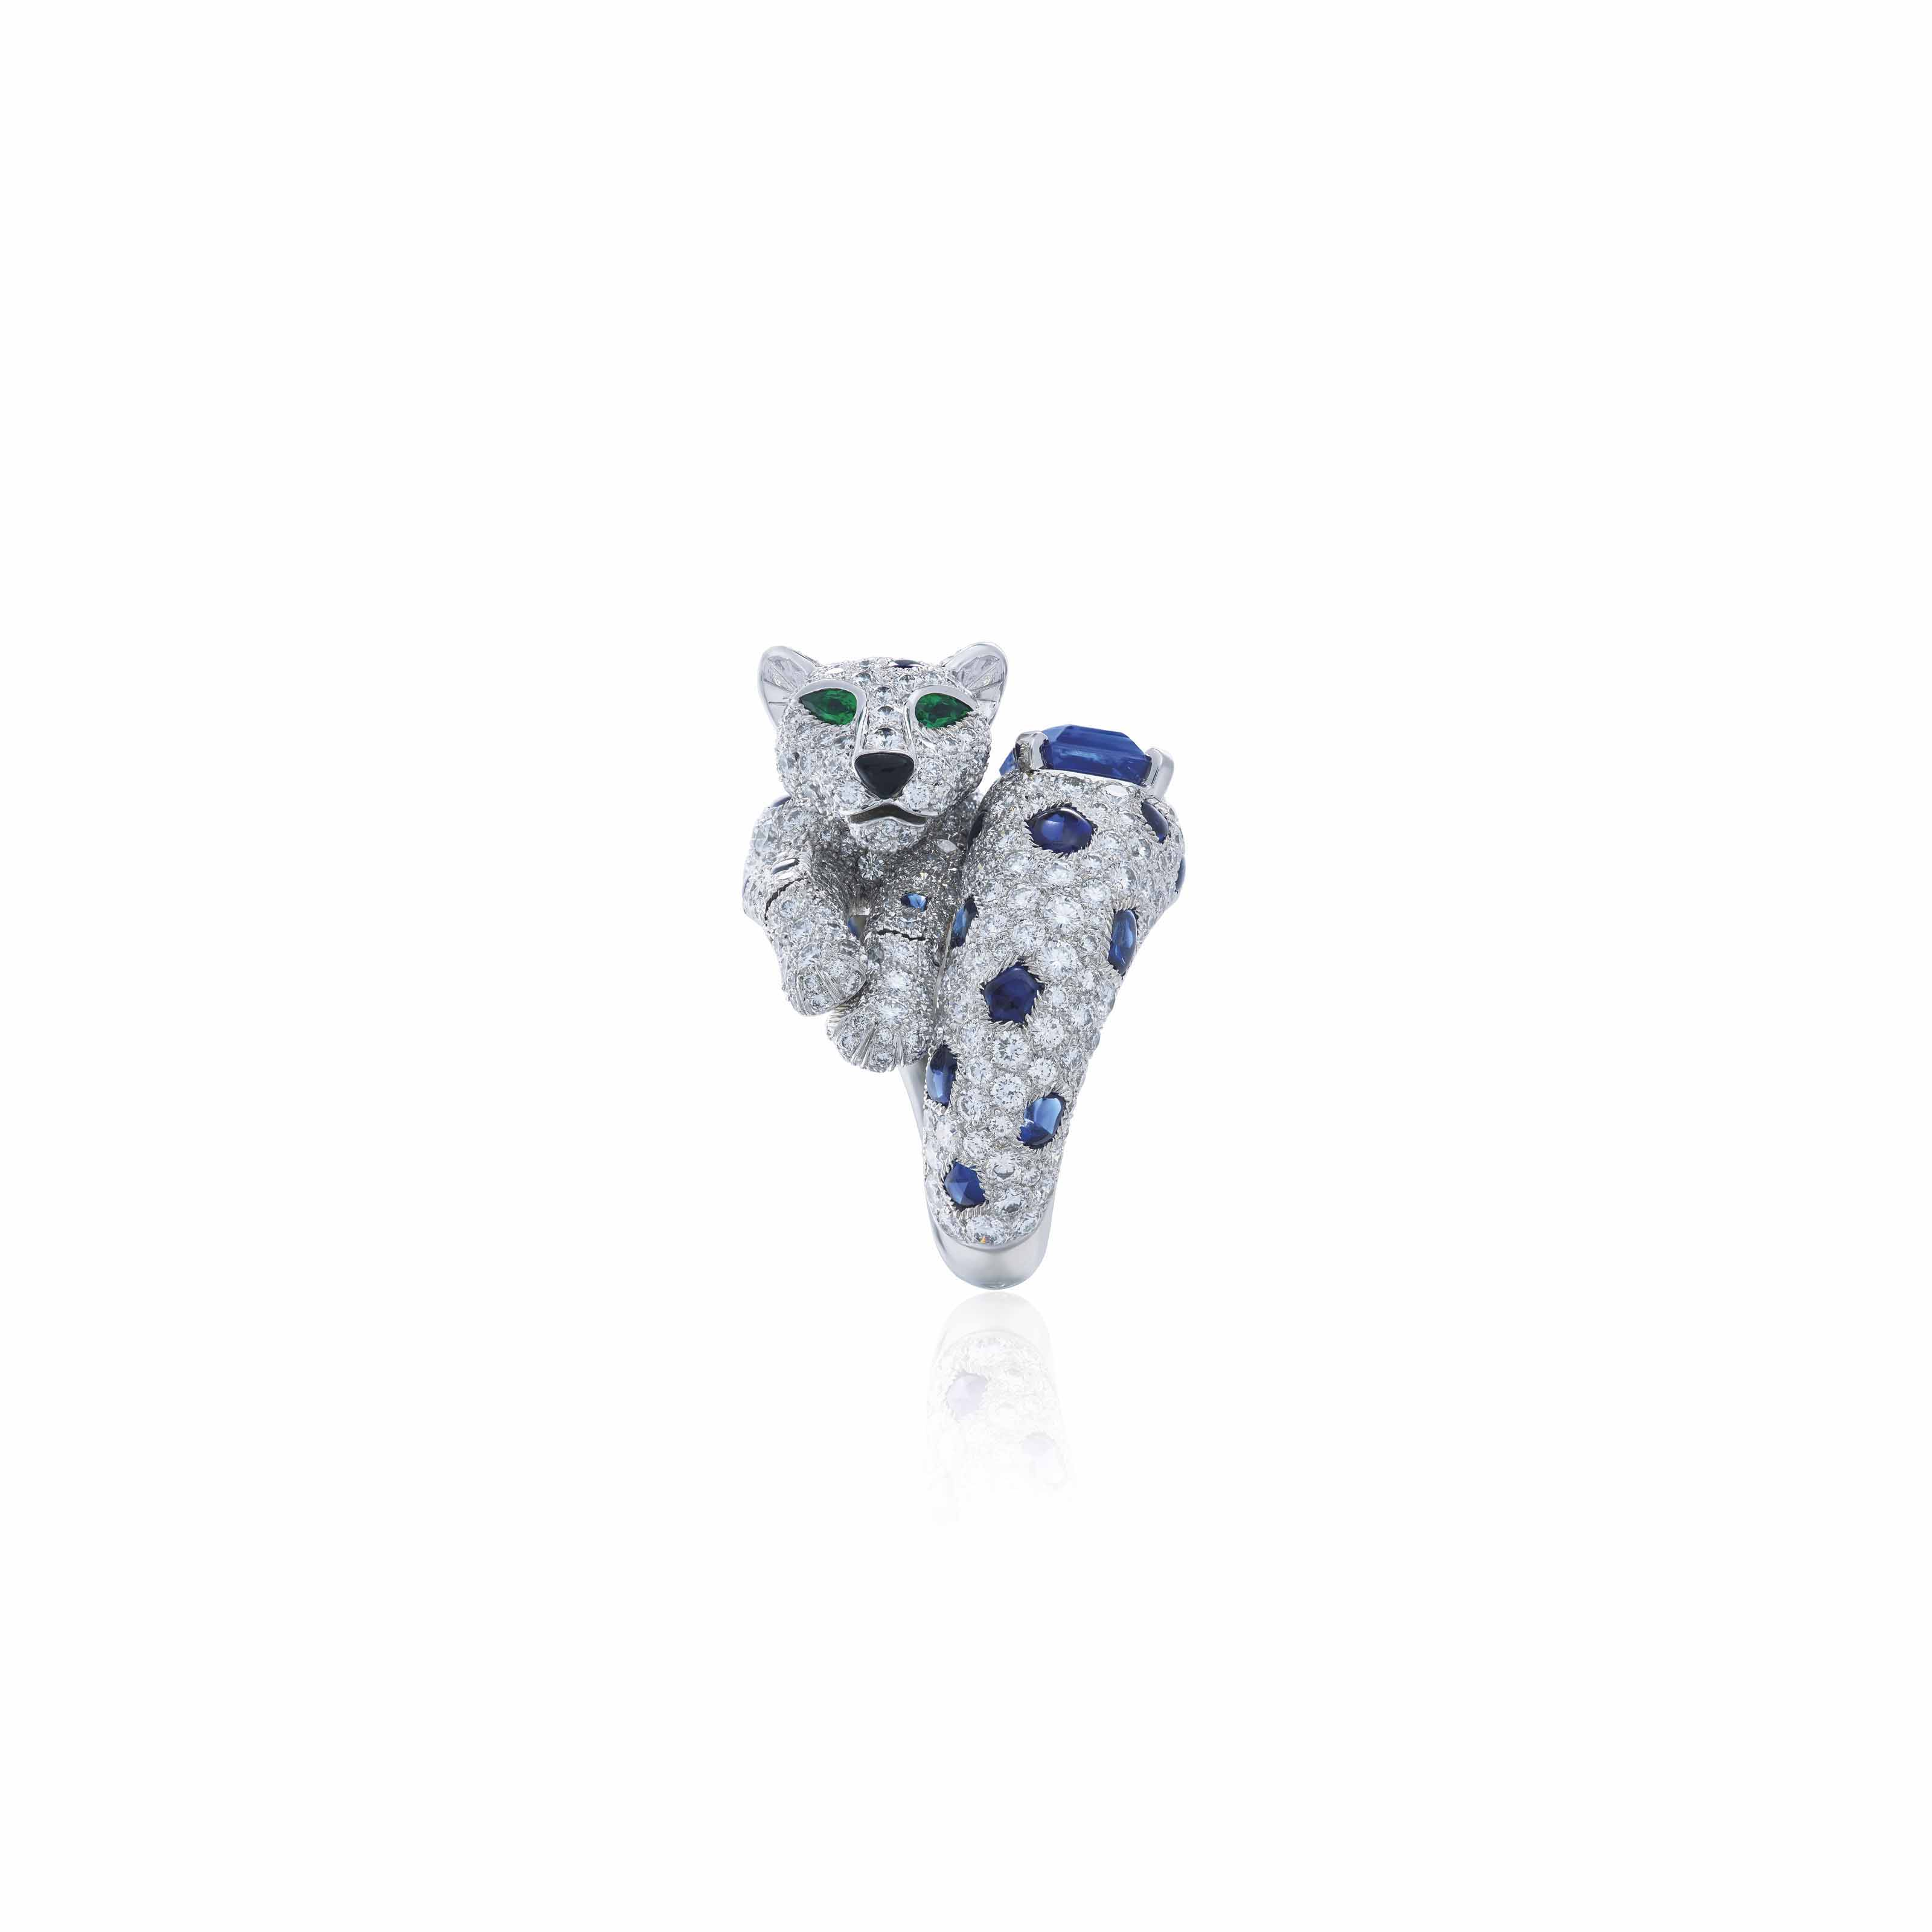 6cc6ceae02635 SAPPHIRE, DIAMOND, EMERALD AND ONYX 'PANTHÈRE' RING, CARTIER ...